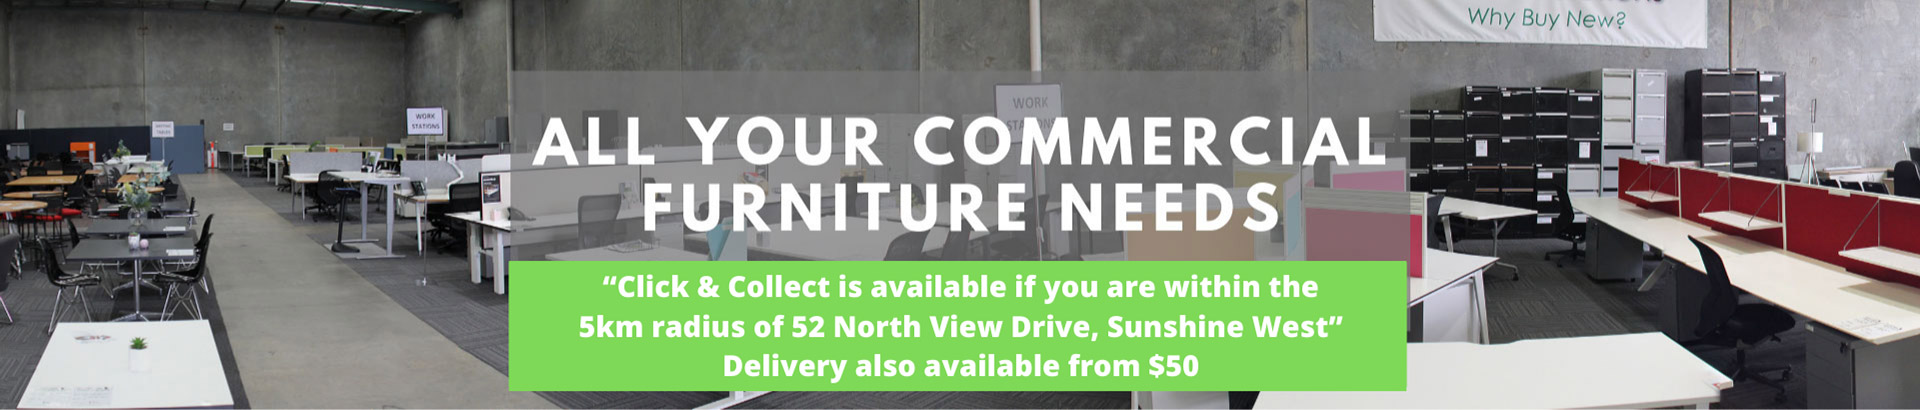 Now offering click & collect within 5km radius. Delivery available from $50